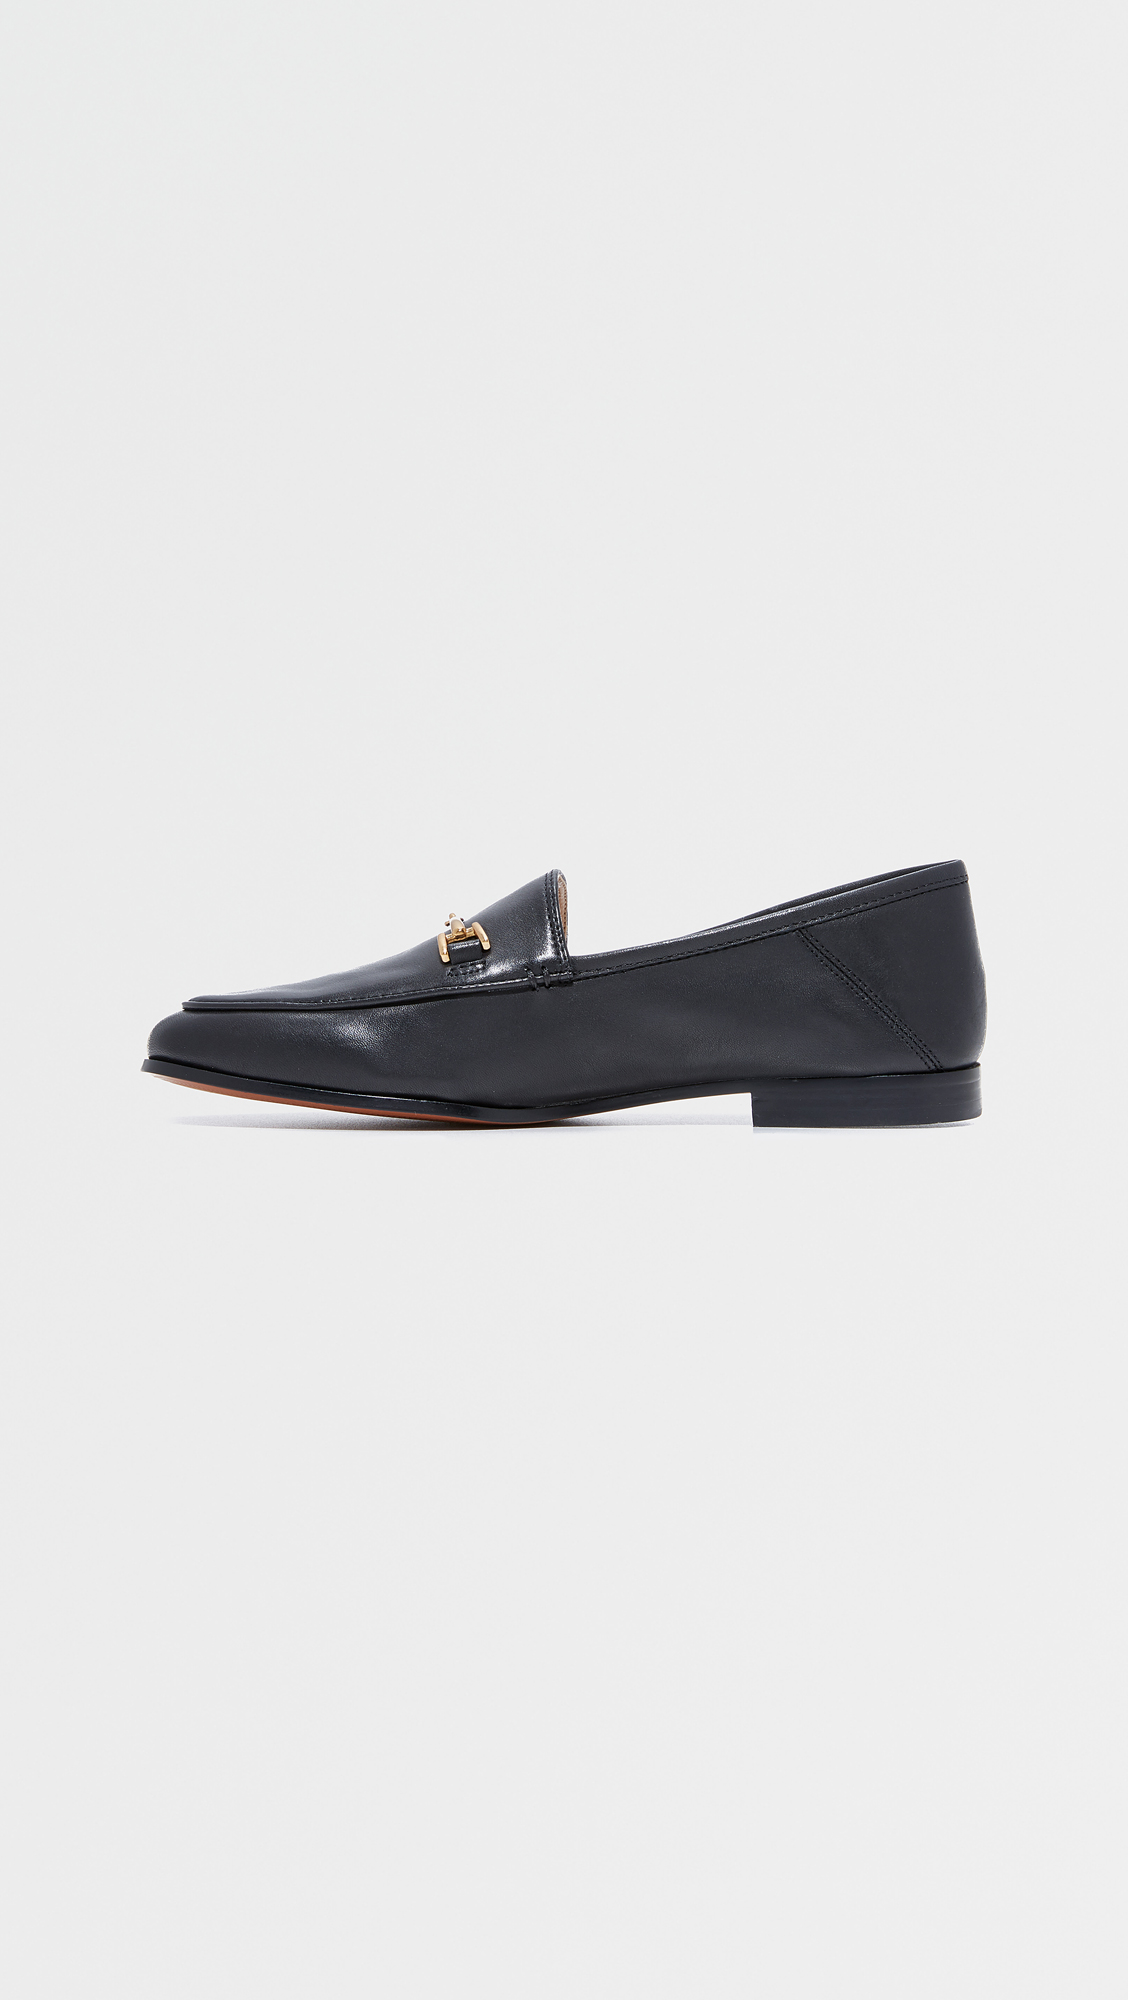 Sam Edelman Loraine Loafers Shopbop D Island Shoes Casual Comfort Suede Black